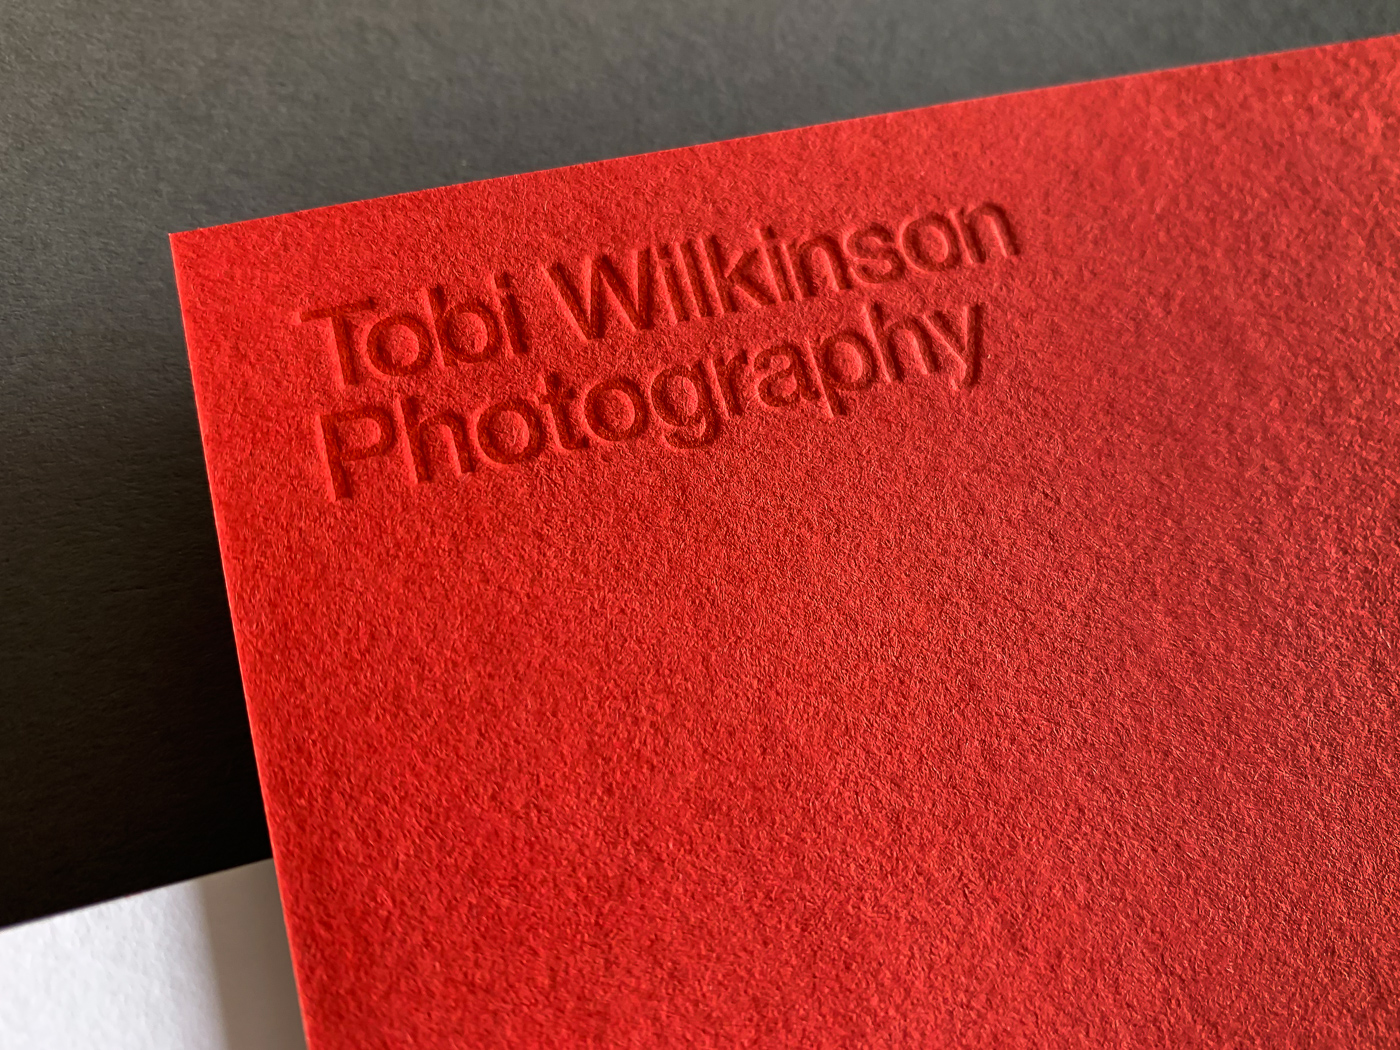 With compliments cards letterpress printed for Tobi Wilkinson on Colorplan Vermilion duplexed to Colorplan Pristine White 3